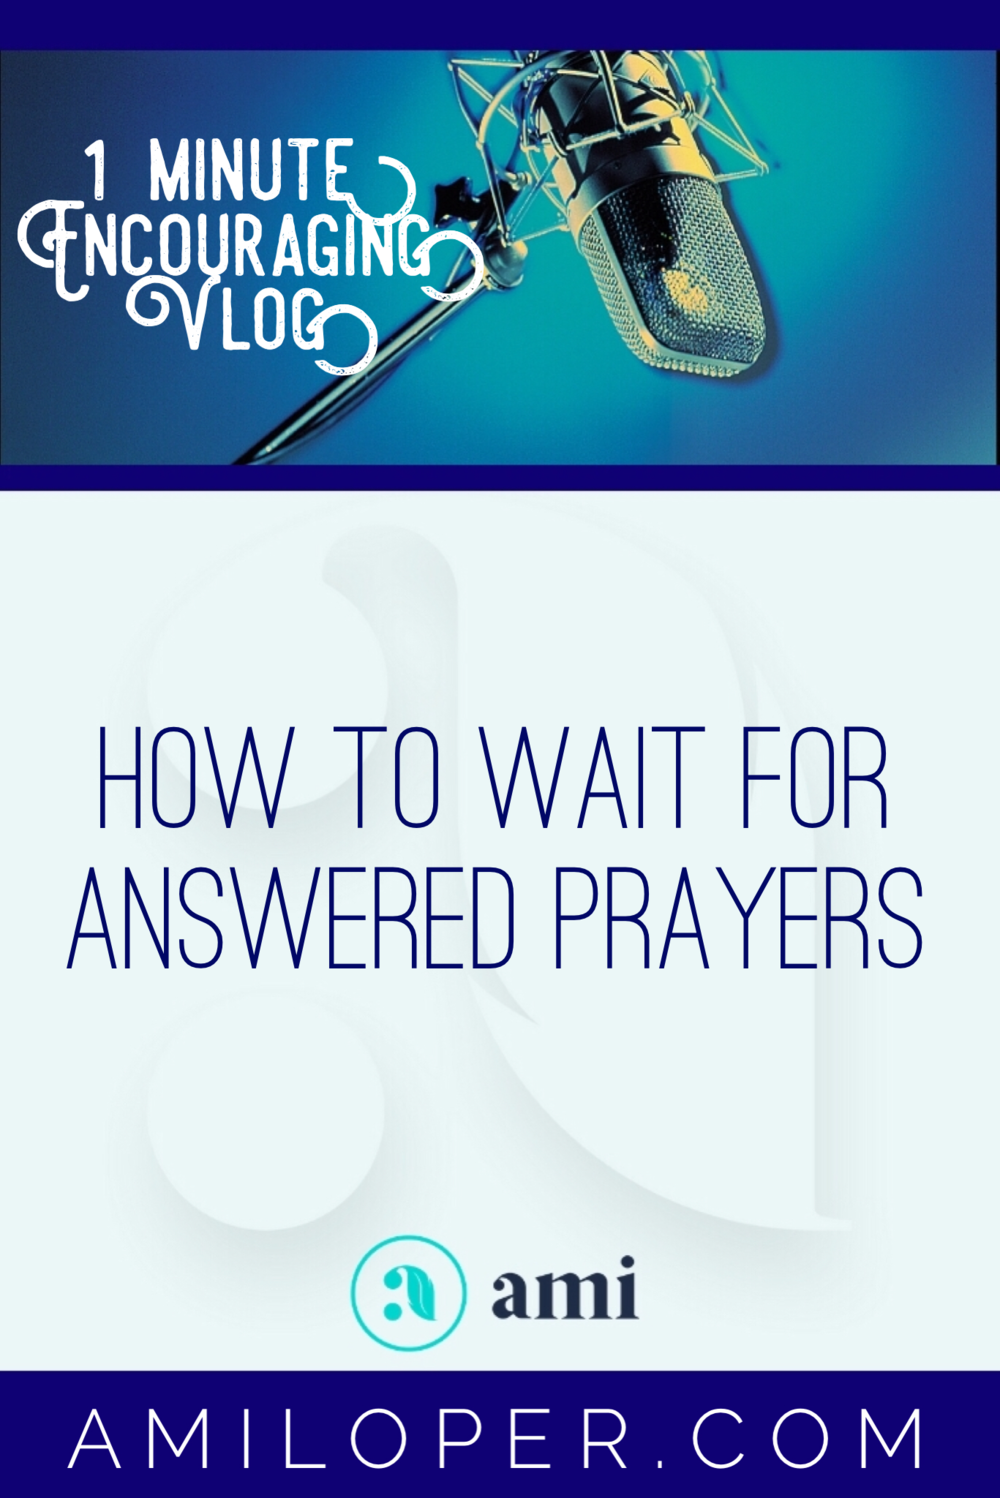 So you've said your prayers. Now what? What comes between prayer and the answer? The Psalmist shows us in a beautiful way! #Prayers #WaitingOnGod #Vlog